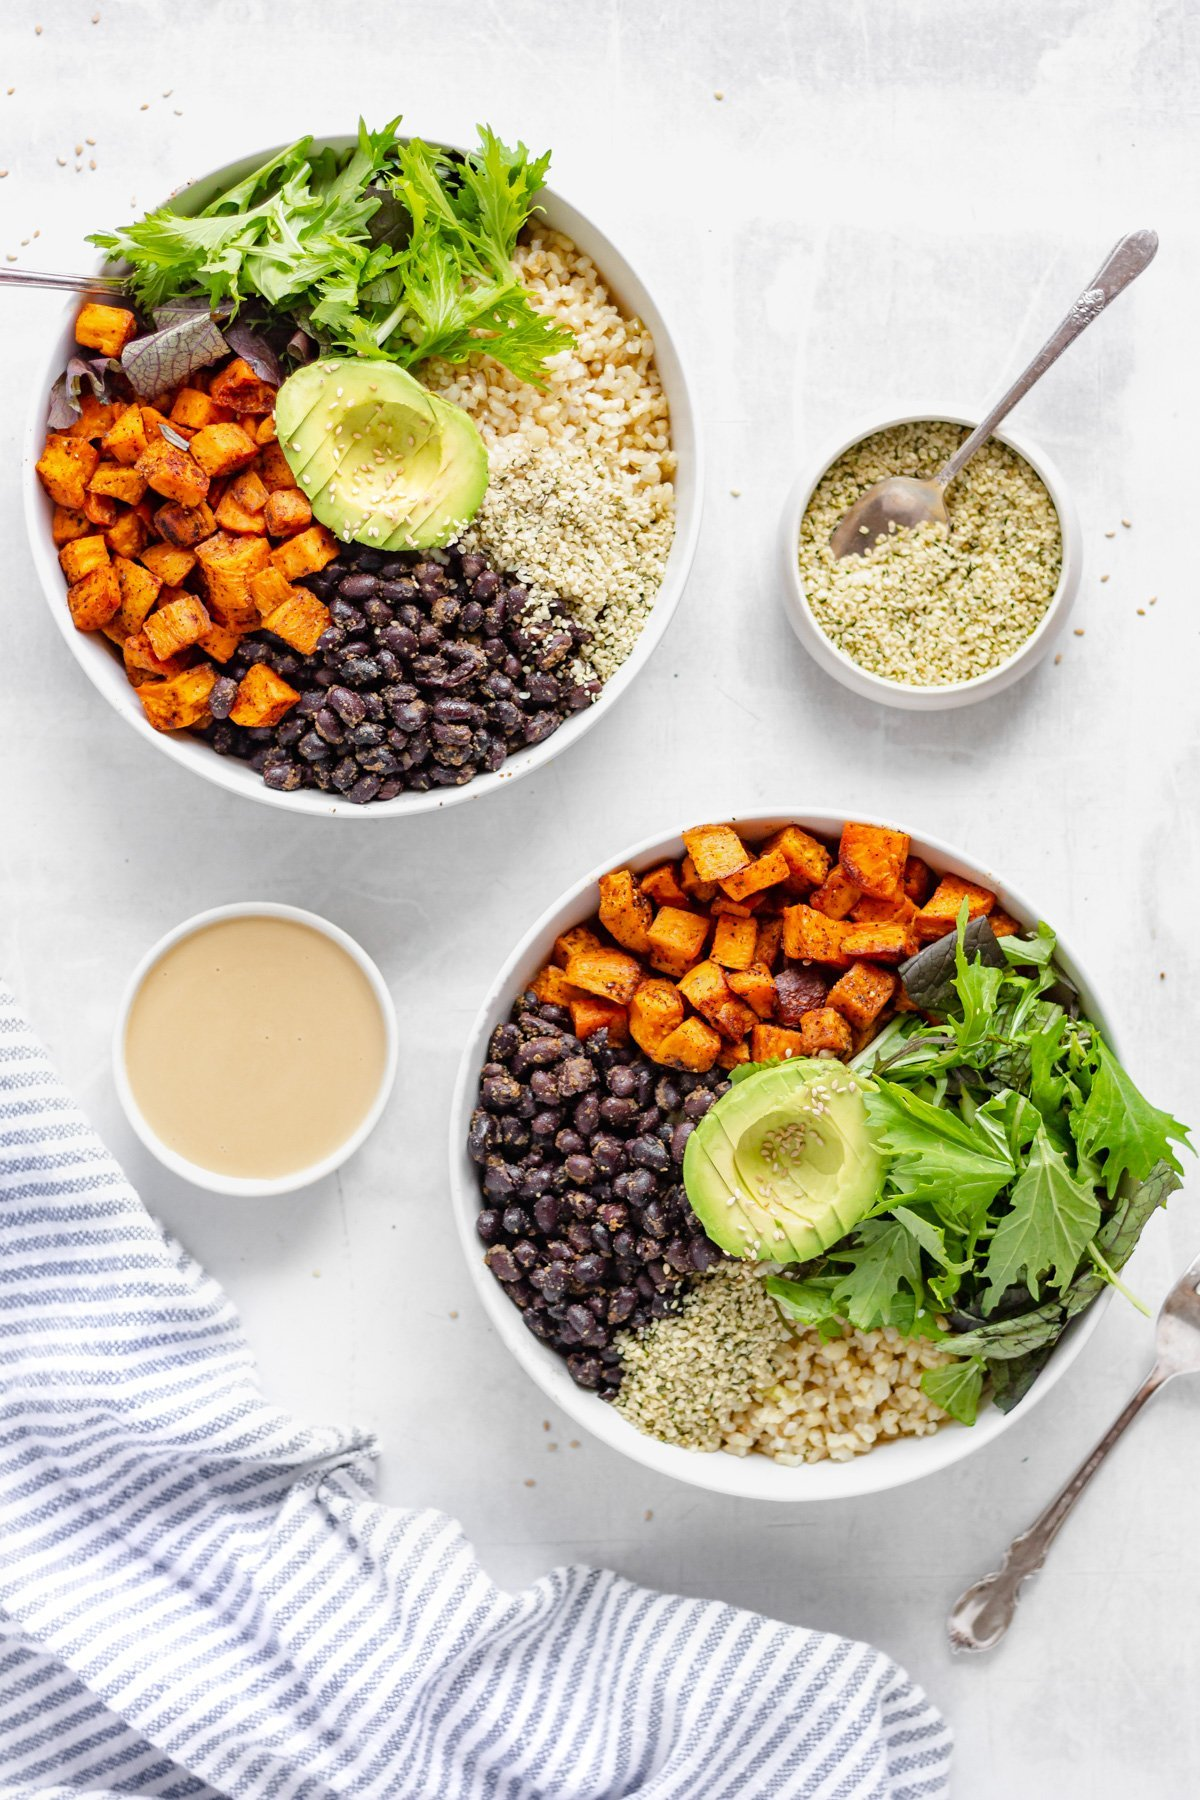 two white bowls containing: sweet potato, black beans, brown rice, leafy greens, and avocado from overhead. Two separate ramekins contain tahini dressing and hemp seeds.